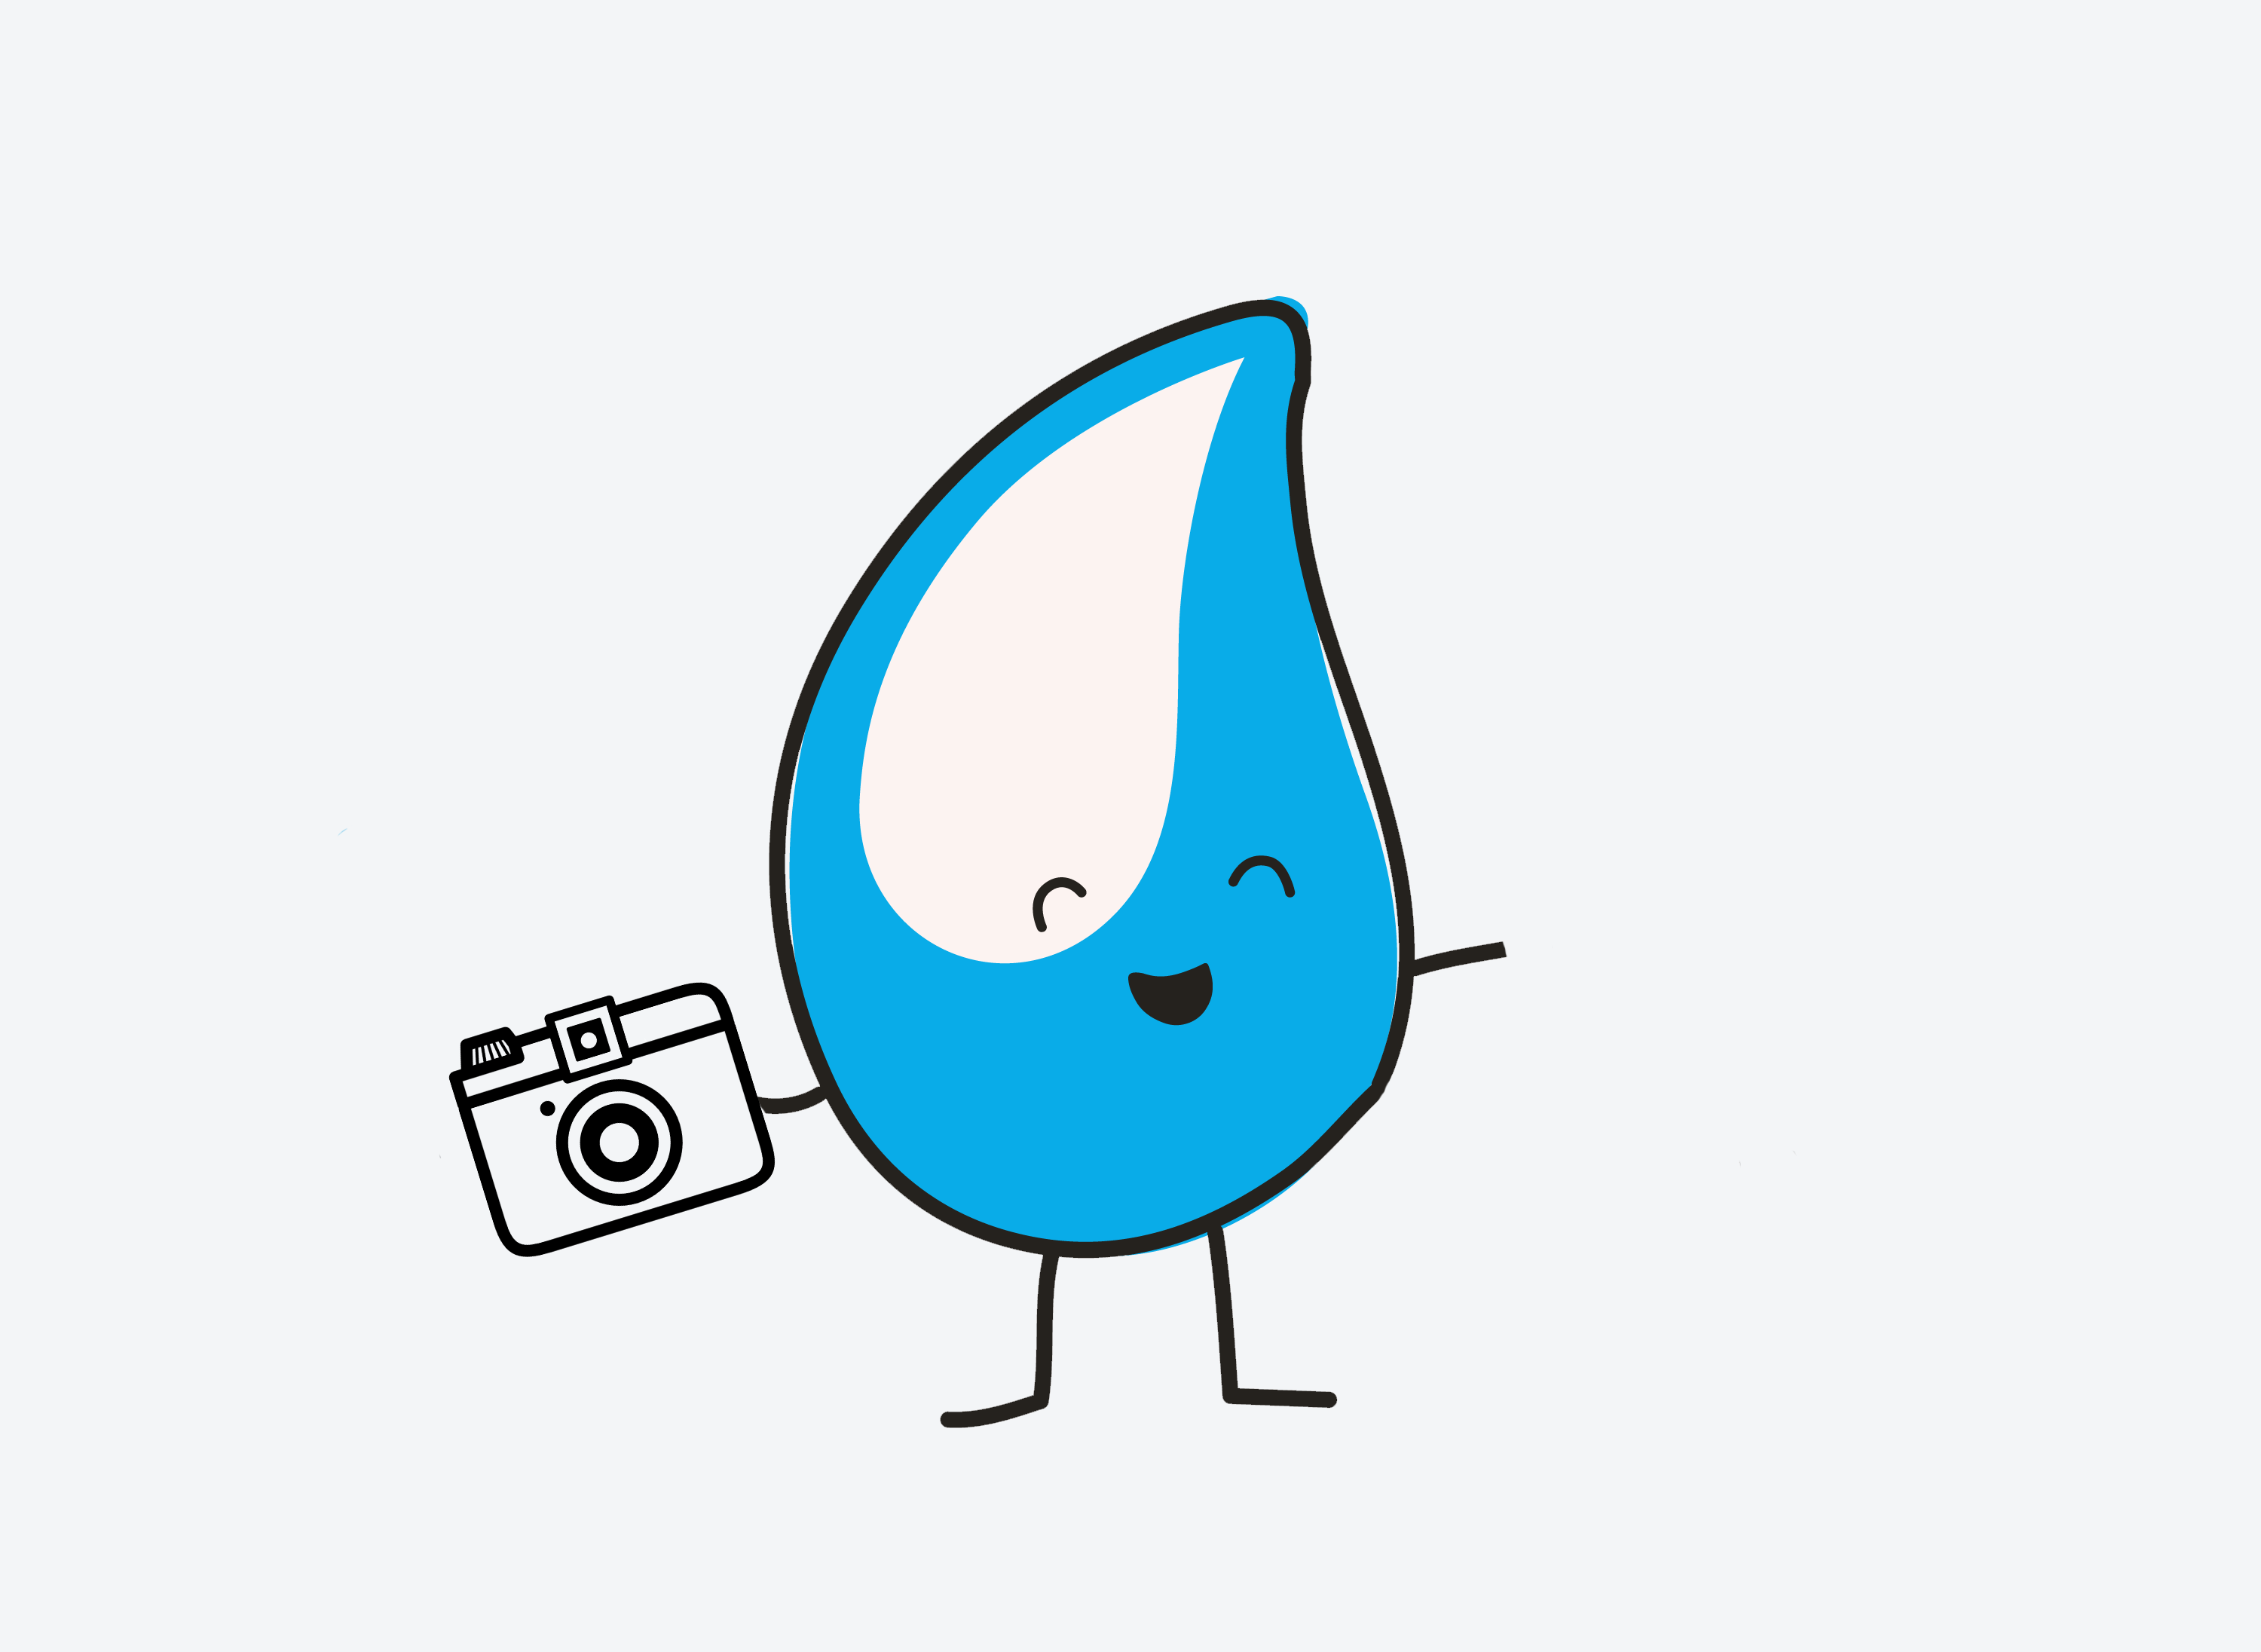 Walter the WaterAid drop with a camera